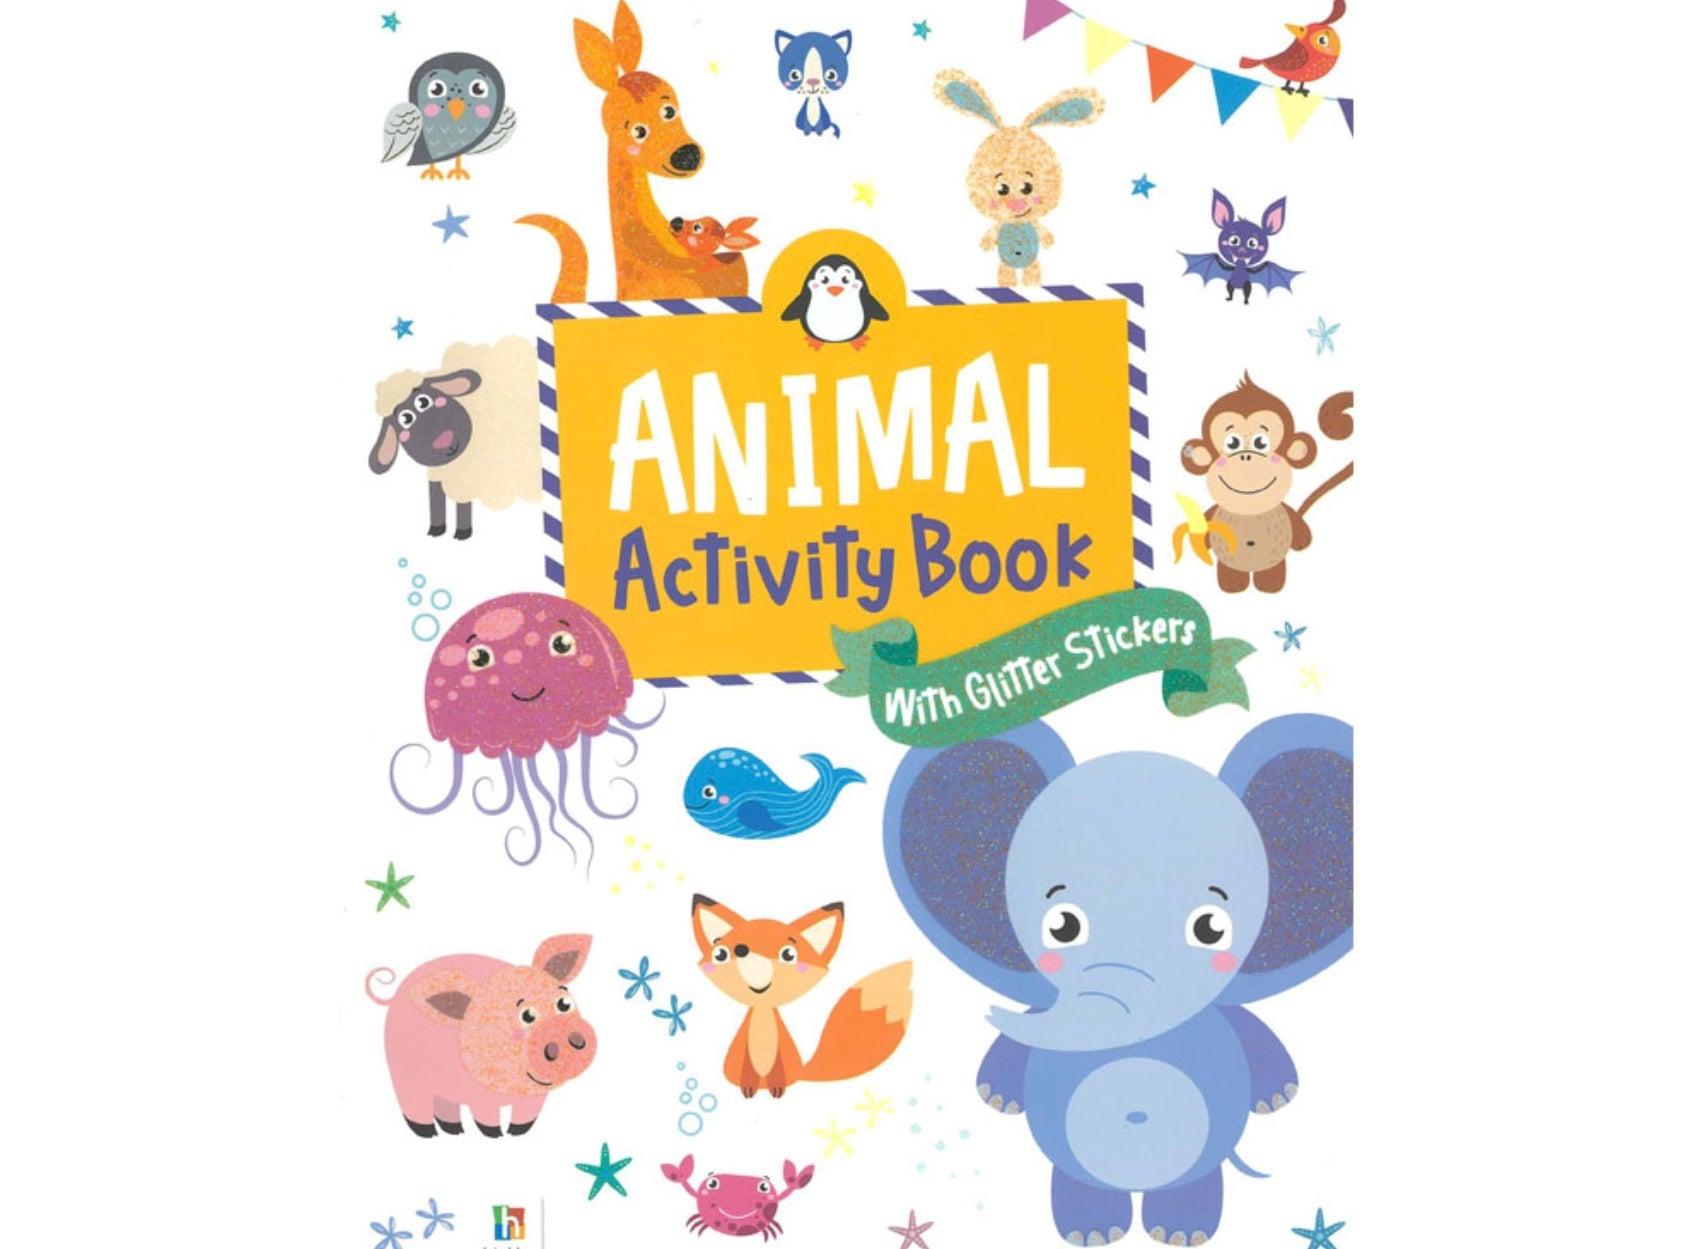 Activity Book - Animals with glitter stickers